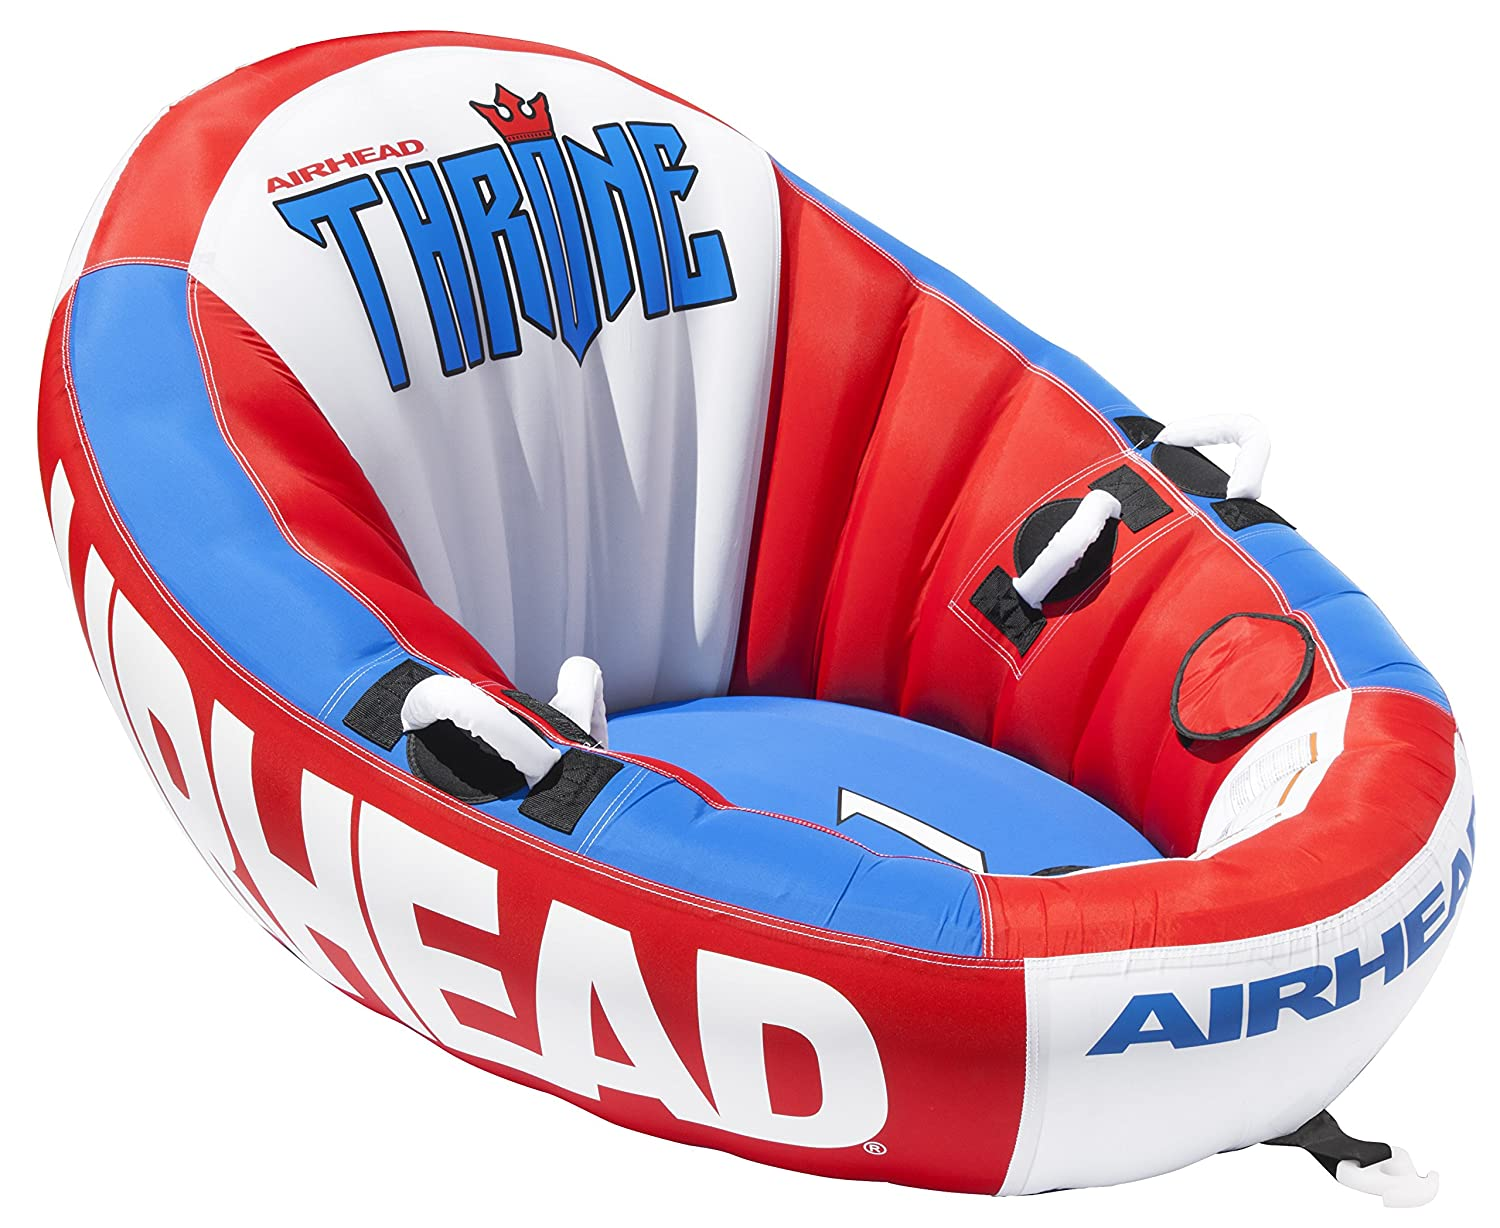 Airhead Throne 1 Rope